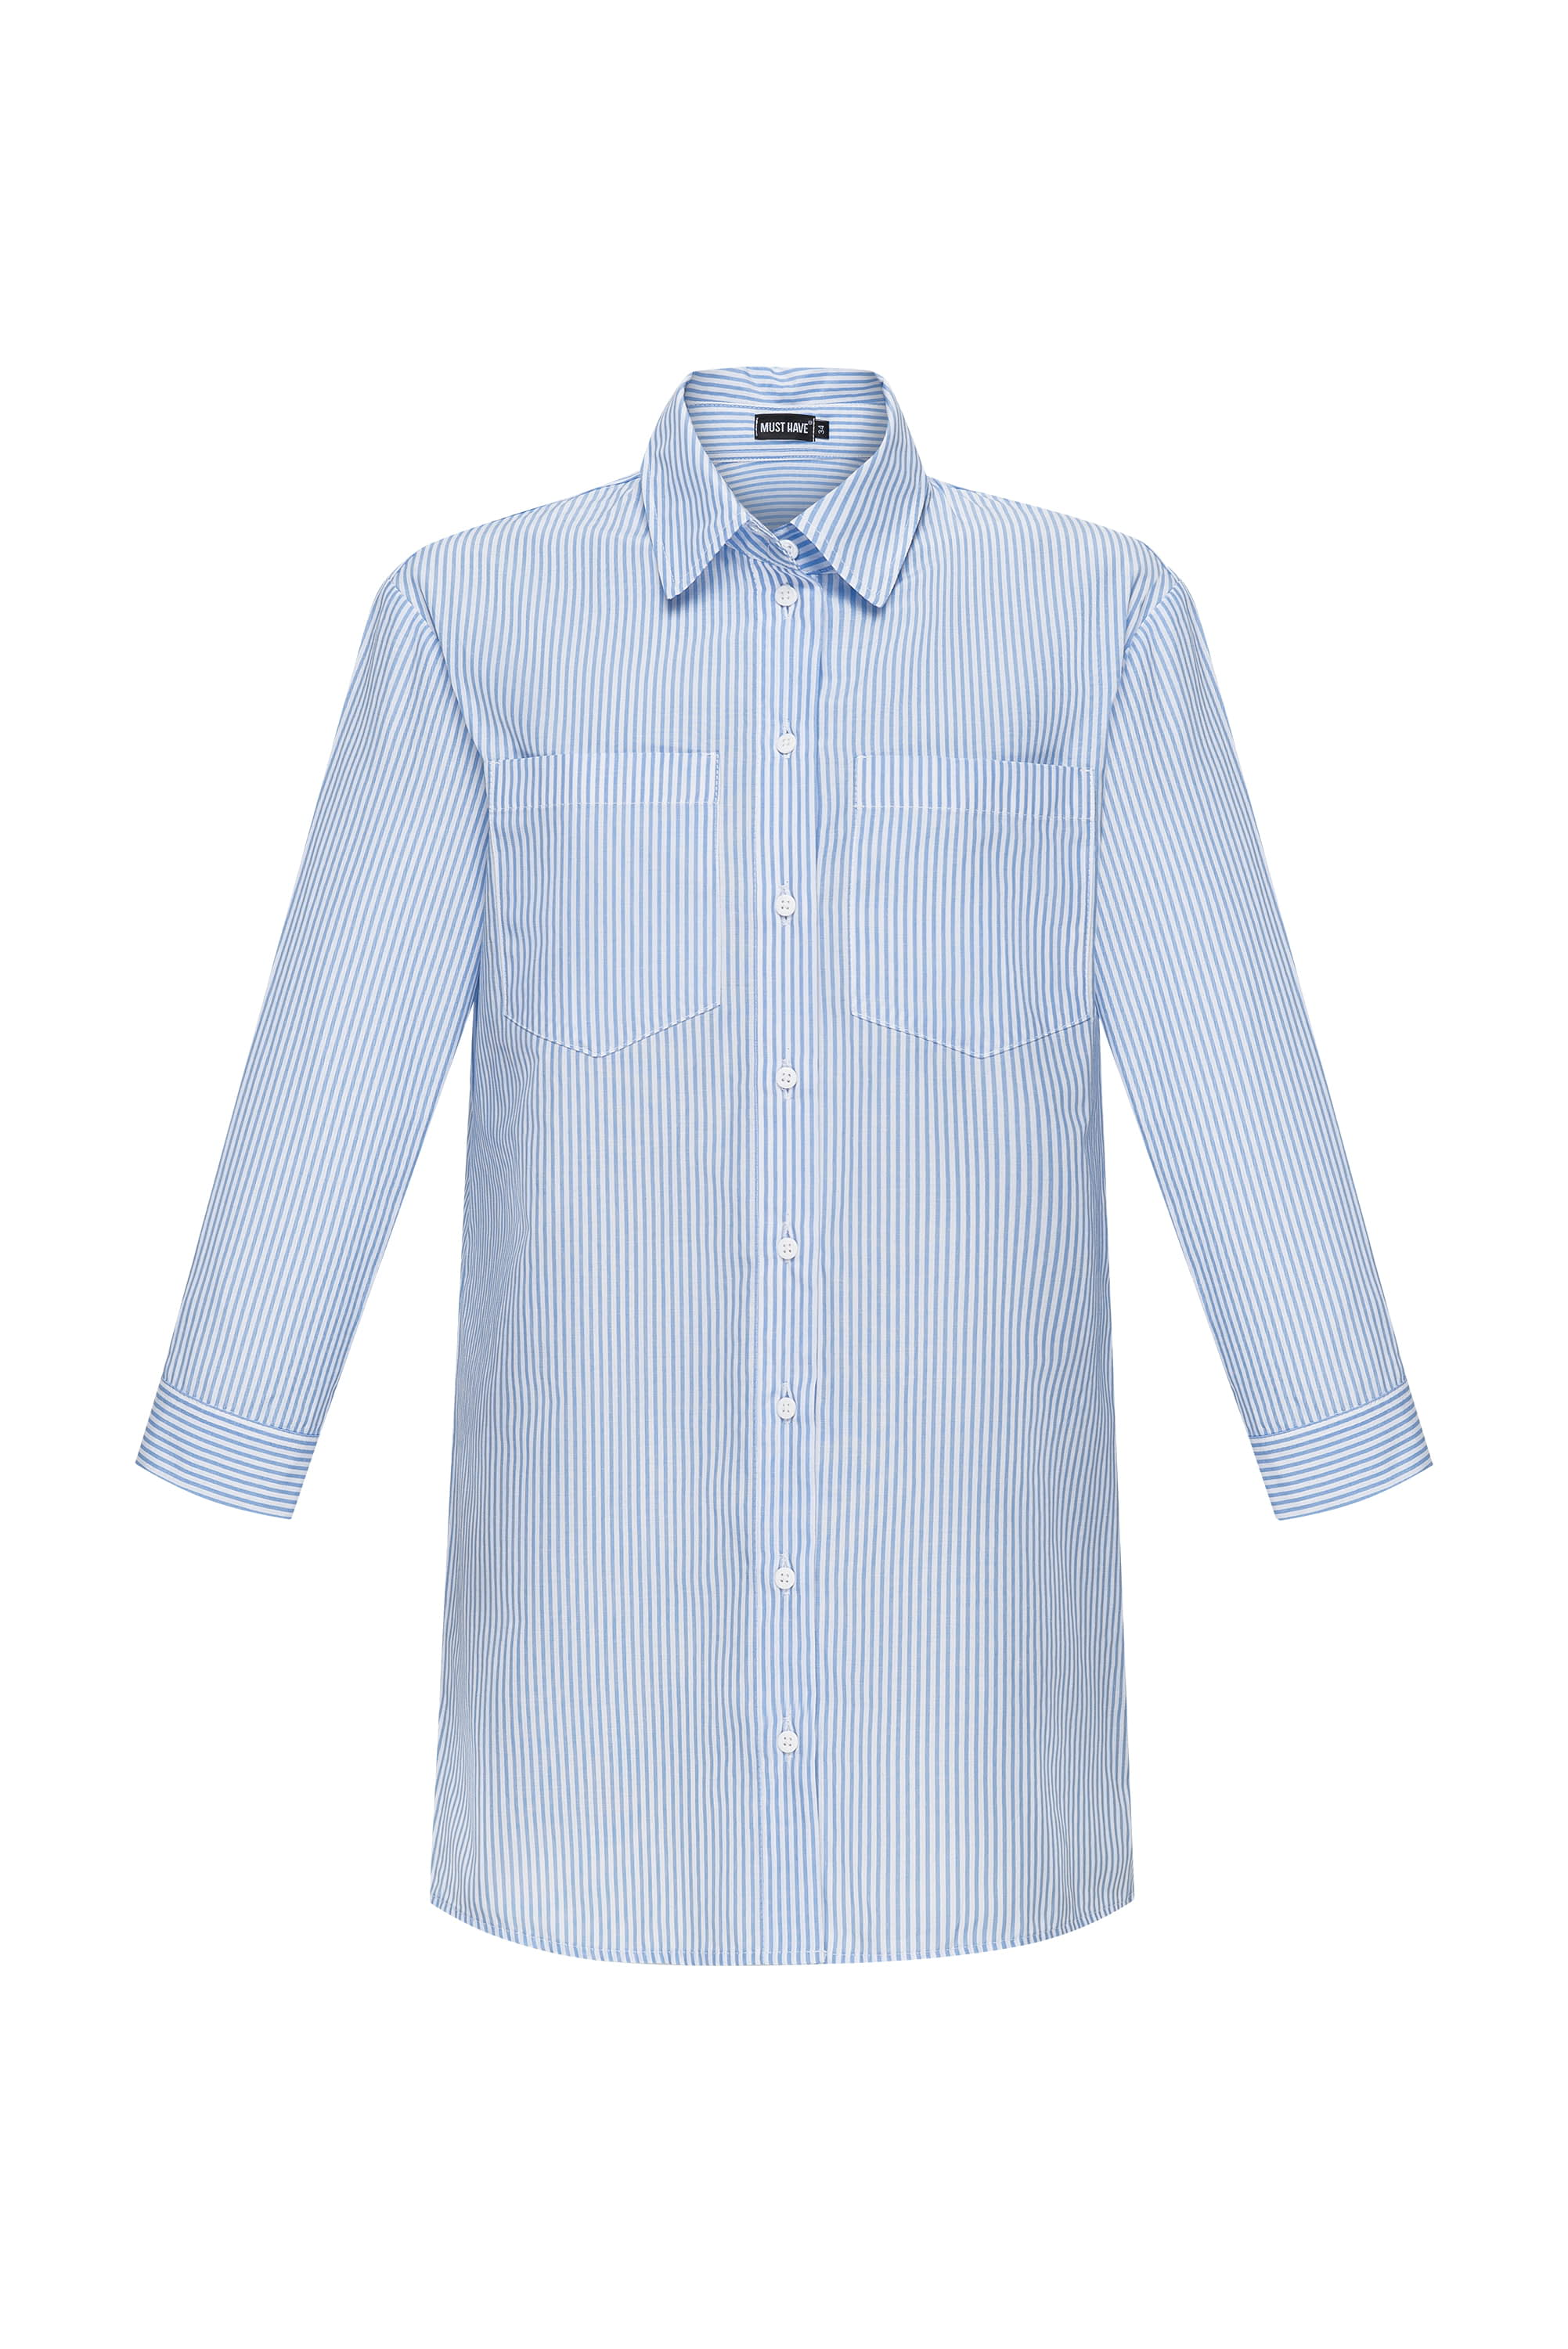 Loose Fitting Striped Shirt Buy In Kiev Price 4499 Usd Uah Musthave